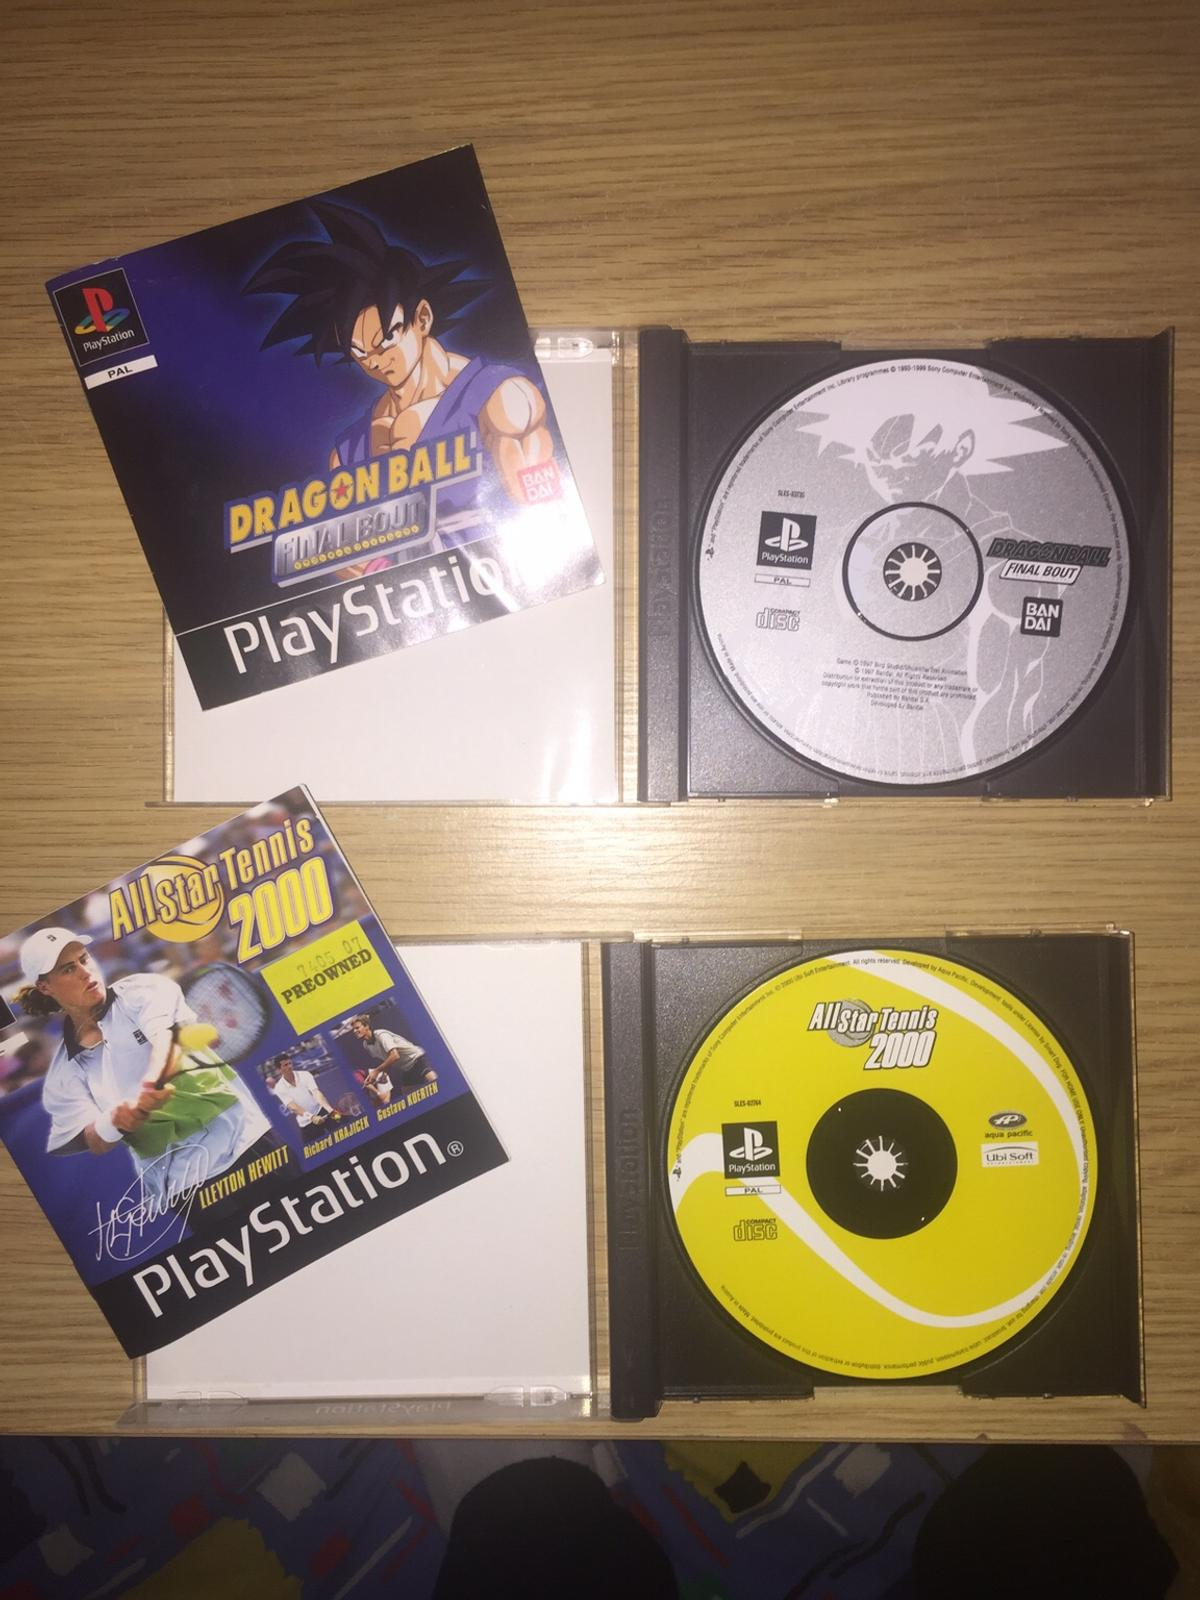 Selling DragonBall Final Bout and Allstar Tennis 2000 on Playstation 1.  Excellent condition, comes with original manual and boxes.